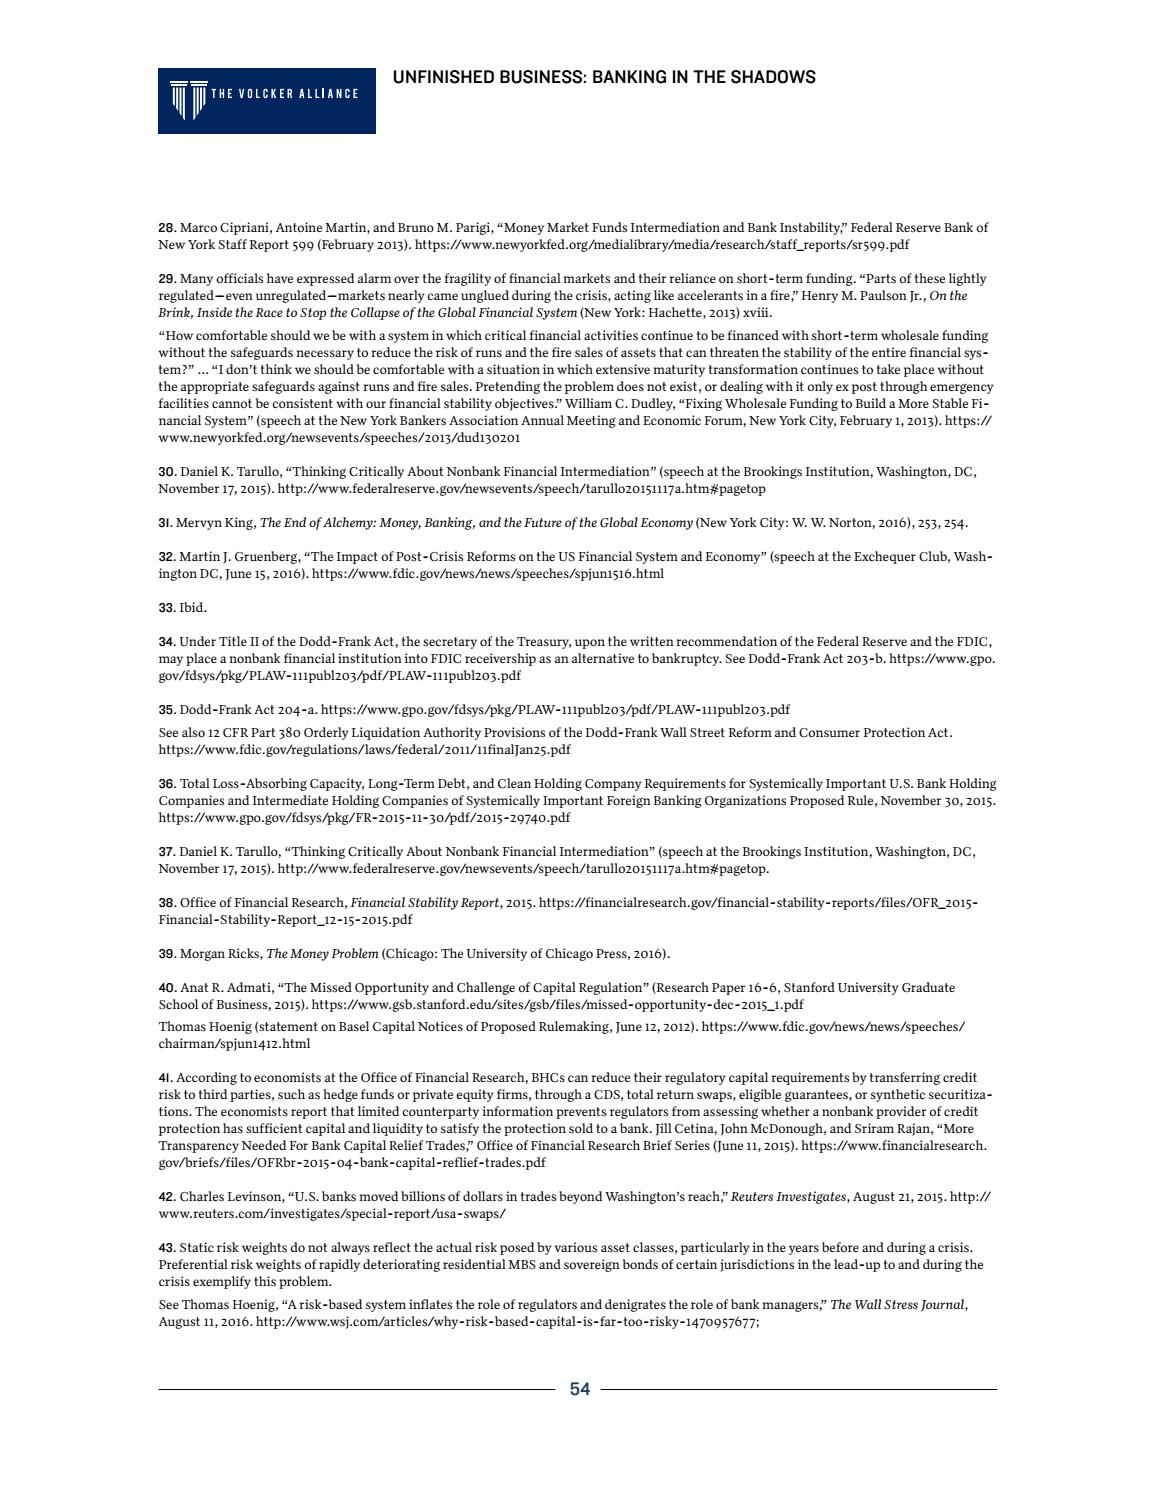 Federal Reserve Act Pdf